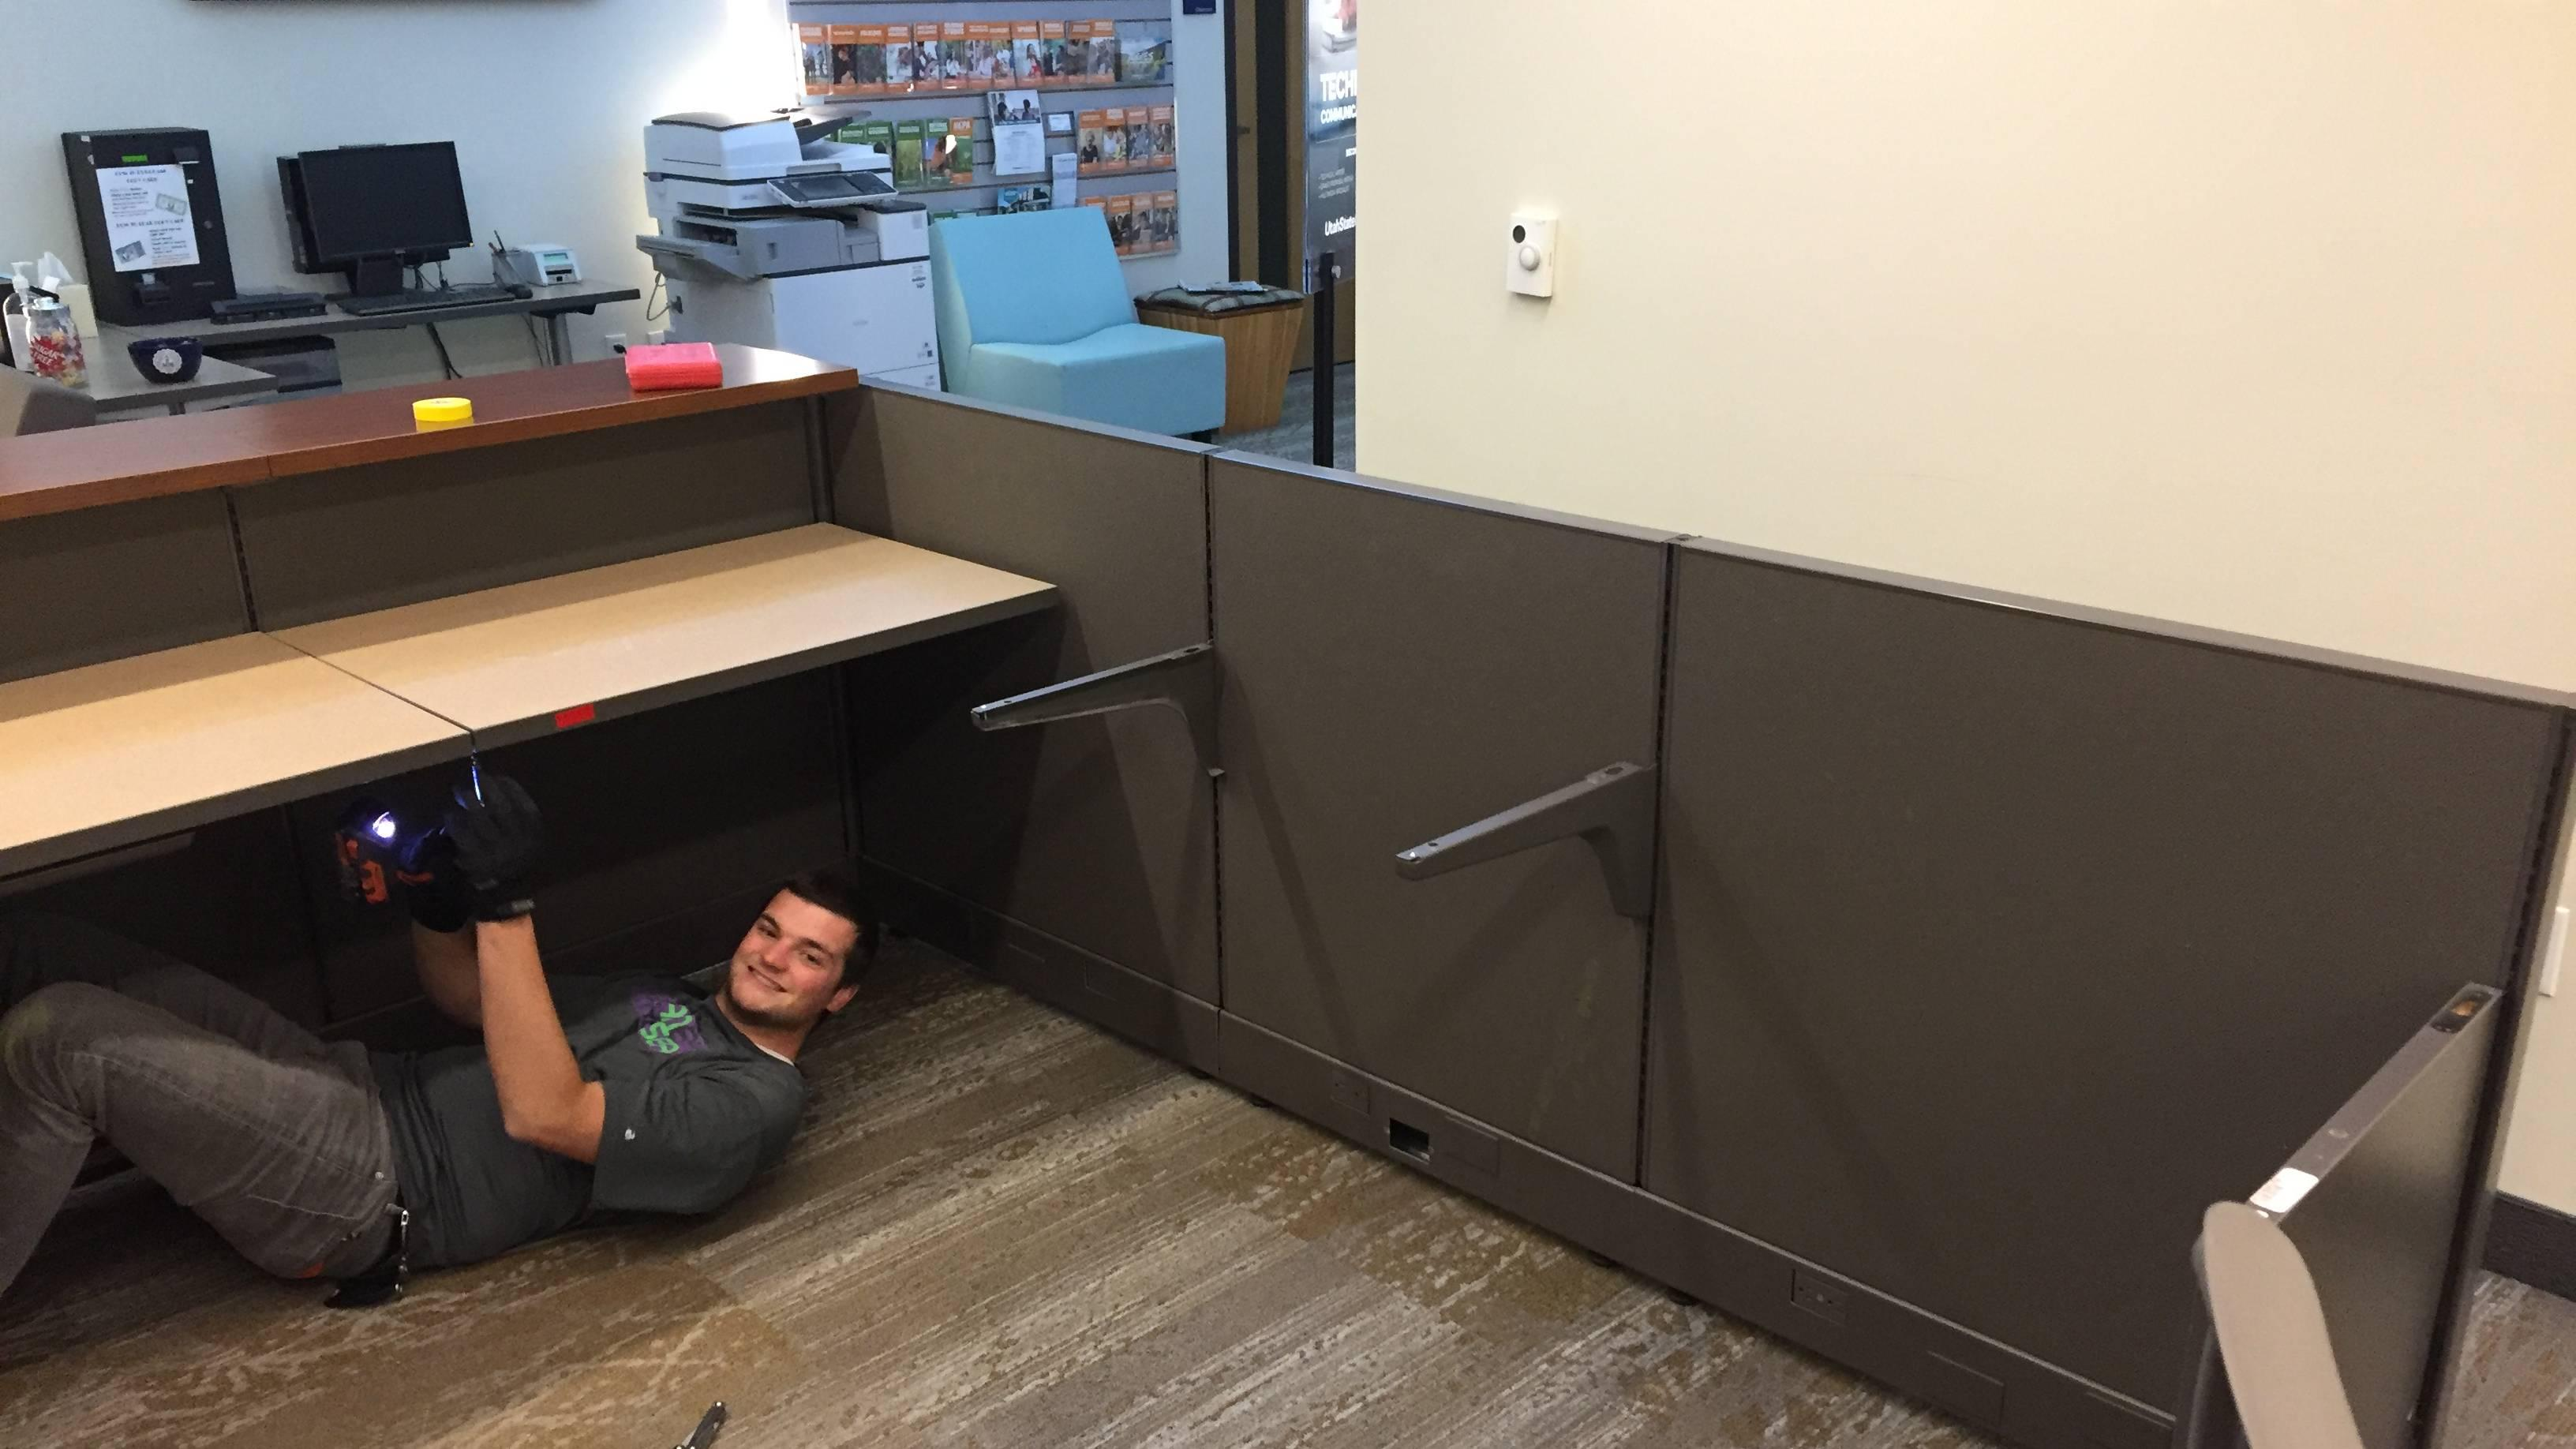 Fun on the job - smilling under the desk